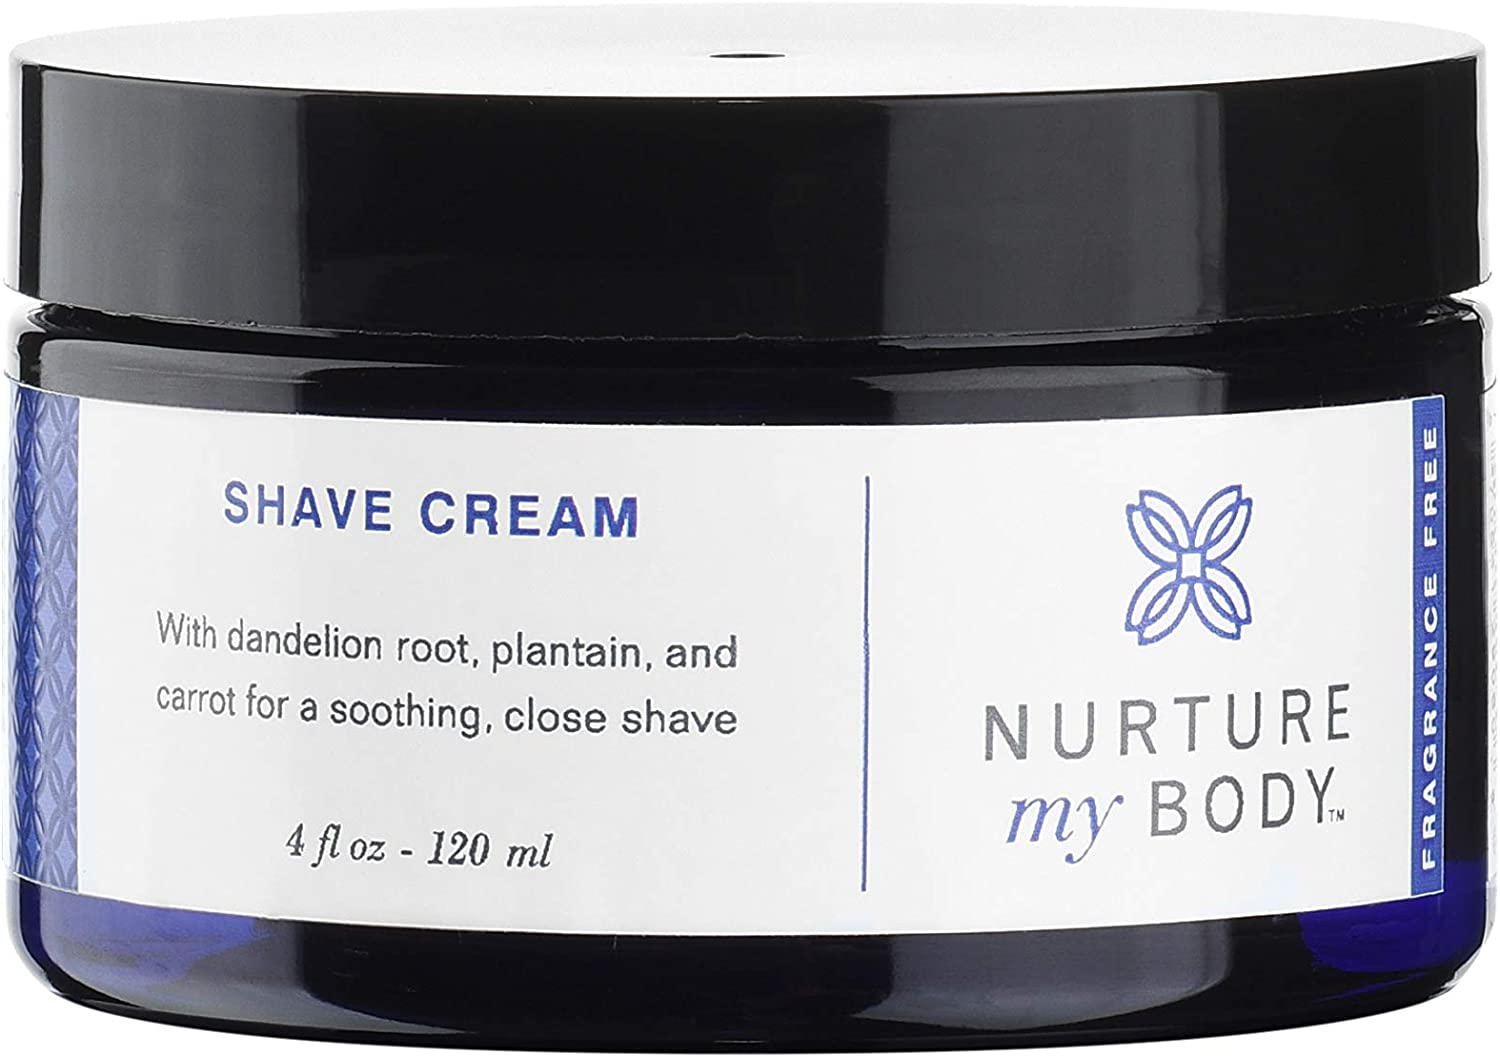 Natural Shave Cream by Nurture My Body | Certified Organic, Fragrance Free | For Sensitive Skin (4 fl oz.)